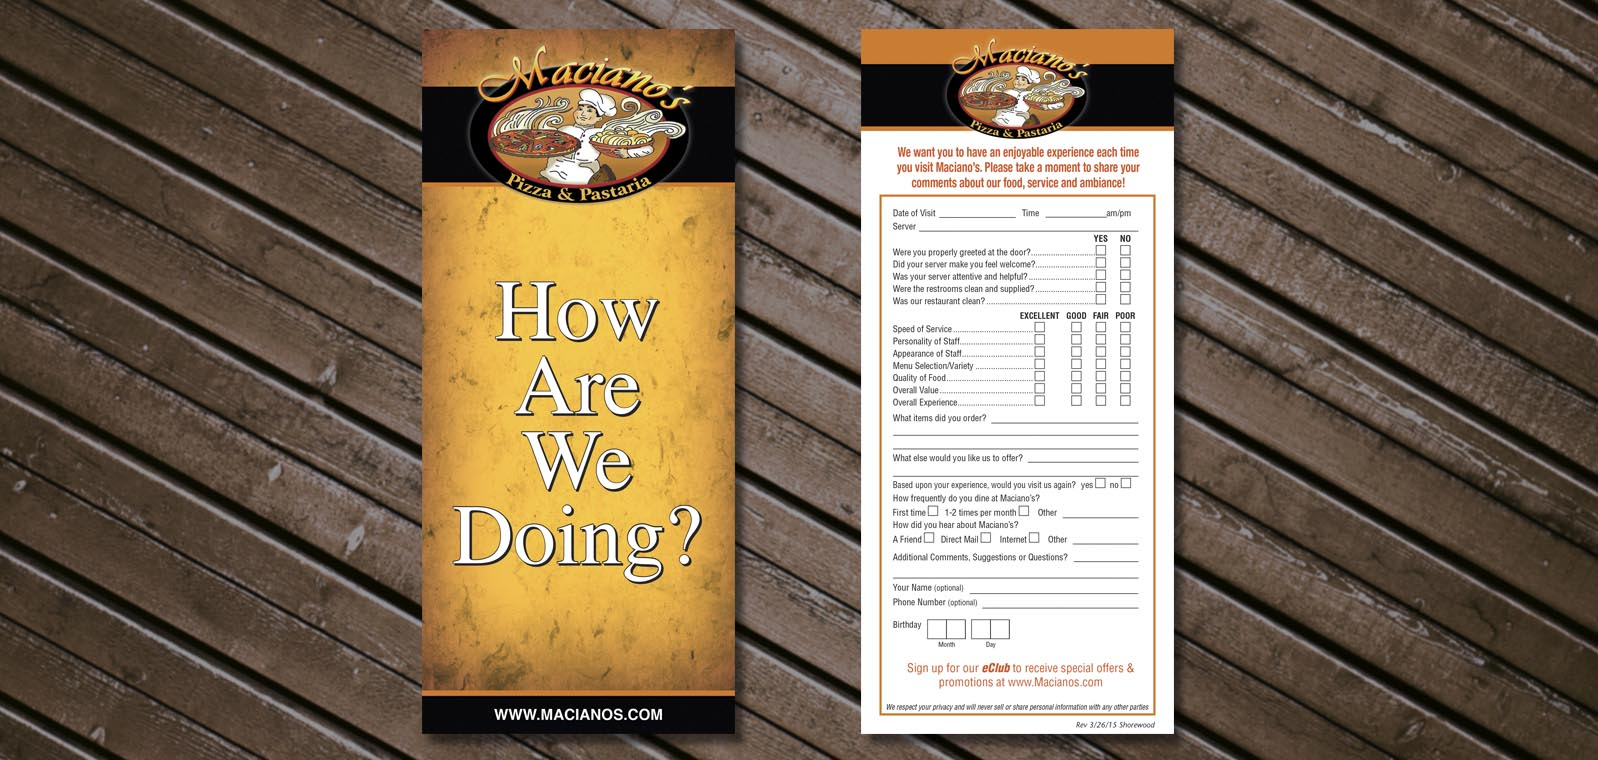 Comment Card Graphic Design for Maciano's Pizza & Pastaria, by Roselle Graphic Designer Controlled Color, Inc.